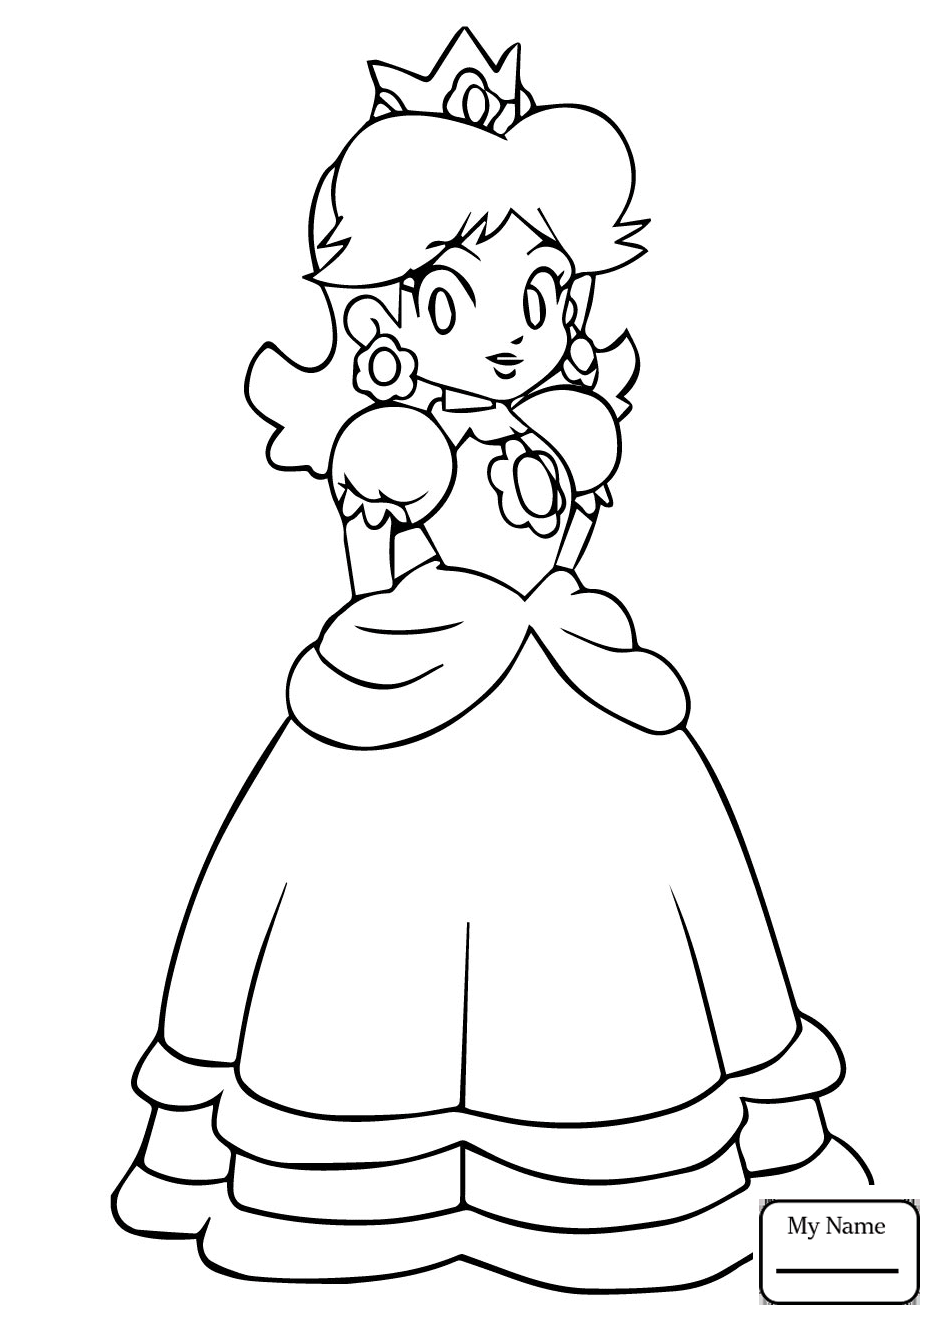 937x1326 Cartoons Princess Daisy Mario Daisy Princess Daisy Coloring Pages